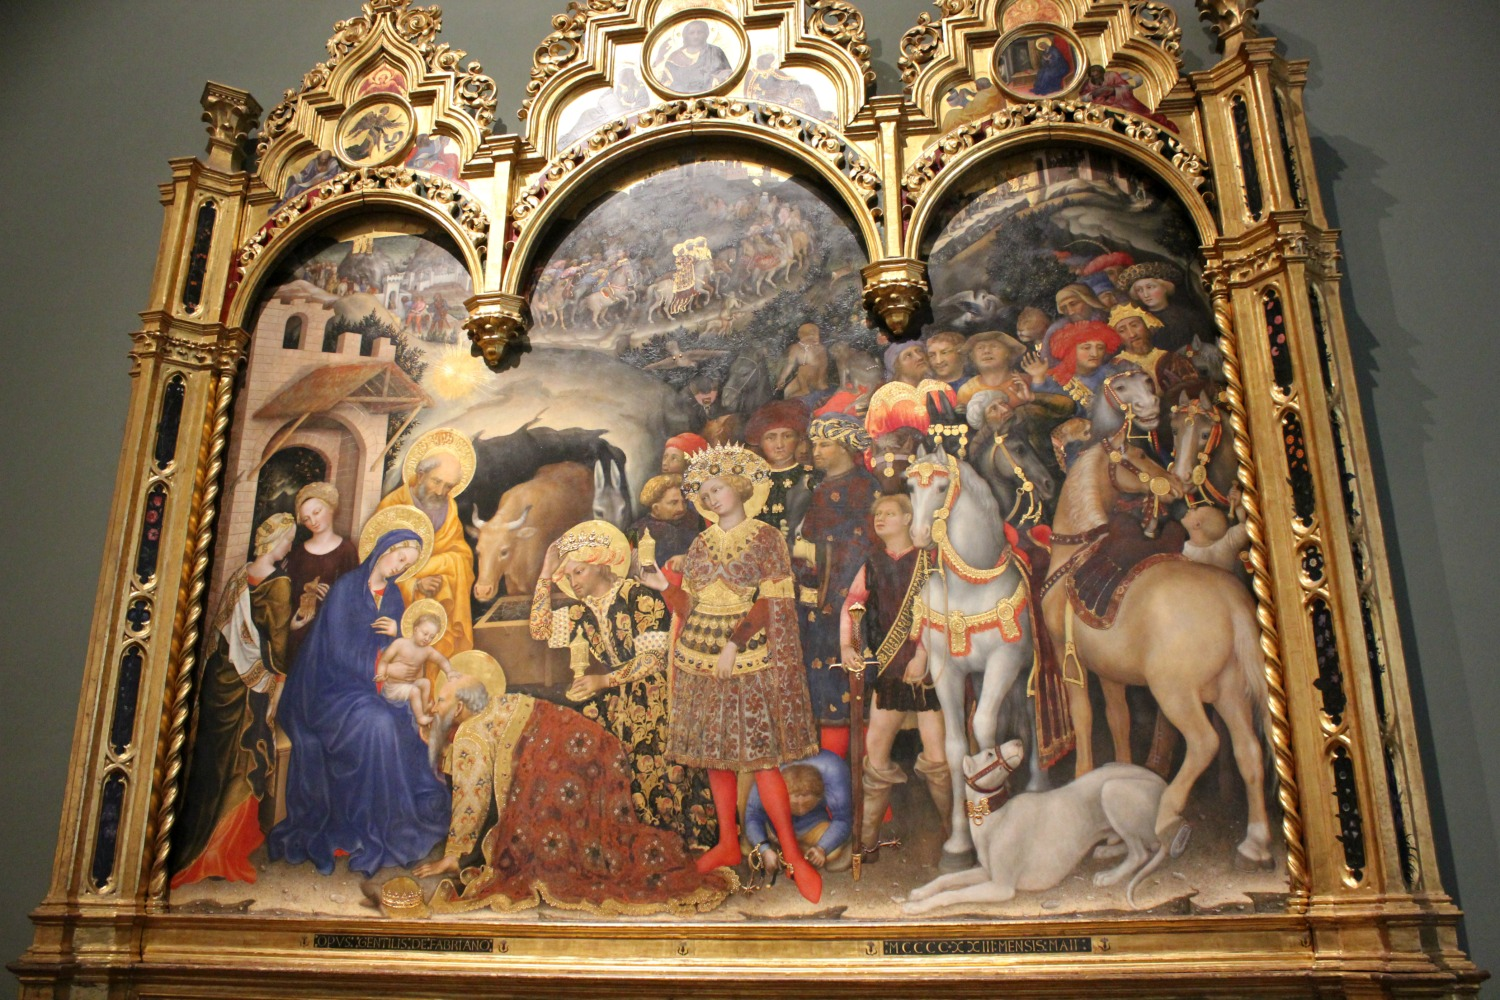 15th century artwork at the Uffizi gallery in Florence, Italy - my Uffizi tour with kids and gelato making day in Florence